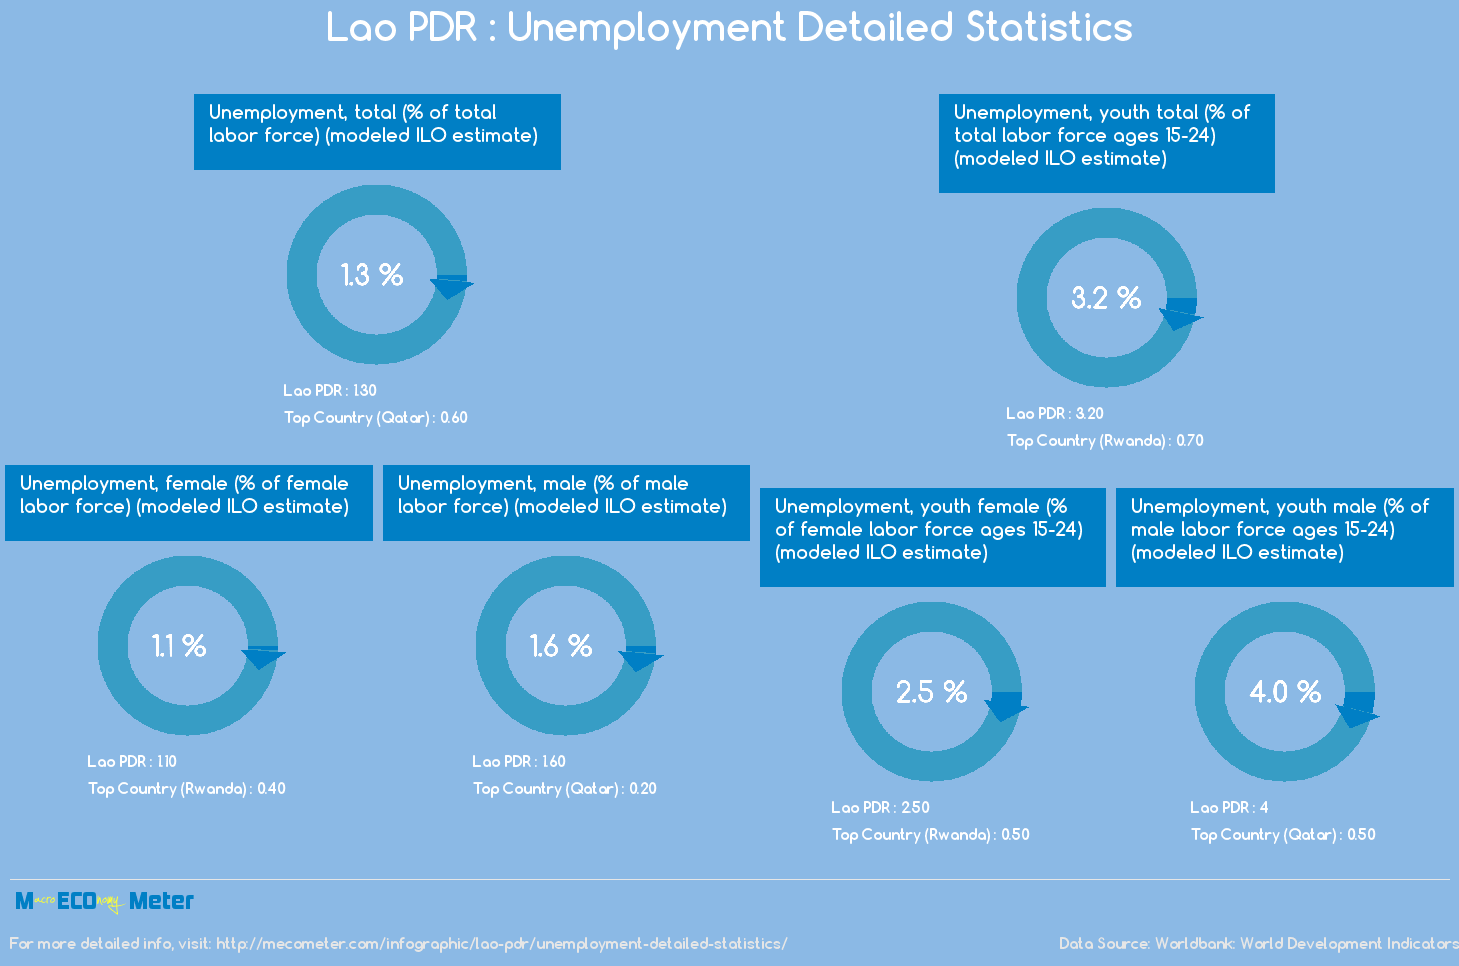 Lao PDR : Unemployment Detailed Statistics